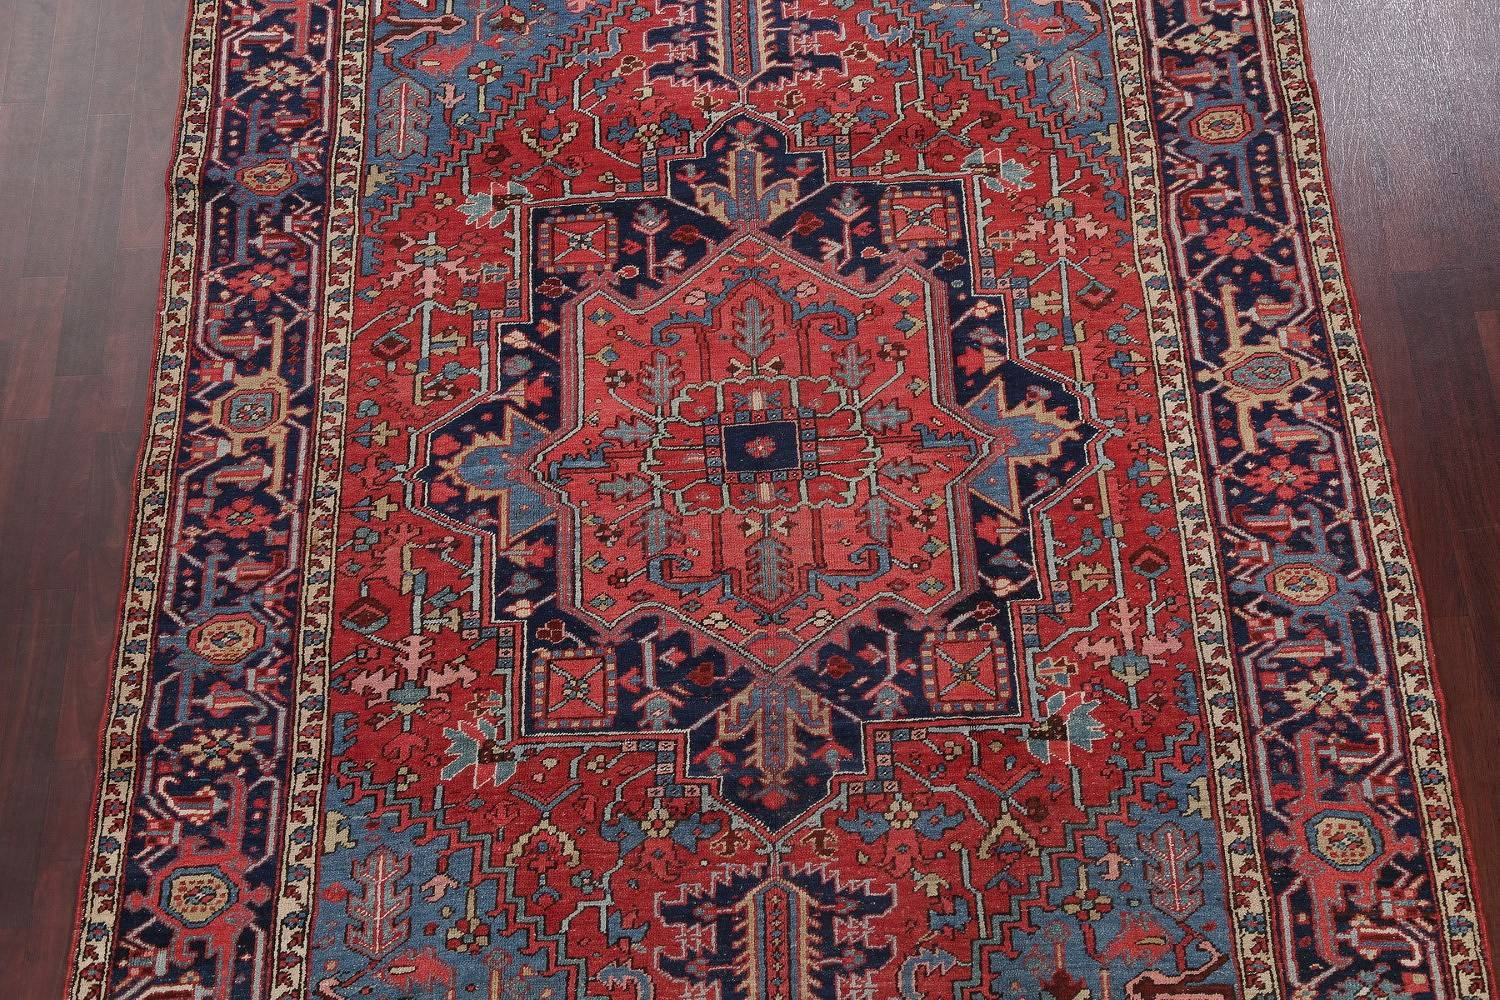 Antique Vegetable Dye Geometric Heriz Serapi Persian Area Rug Wool 7x10